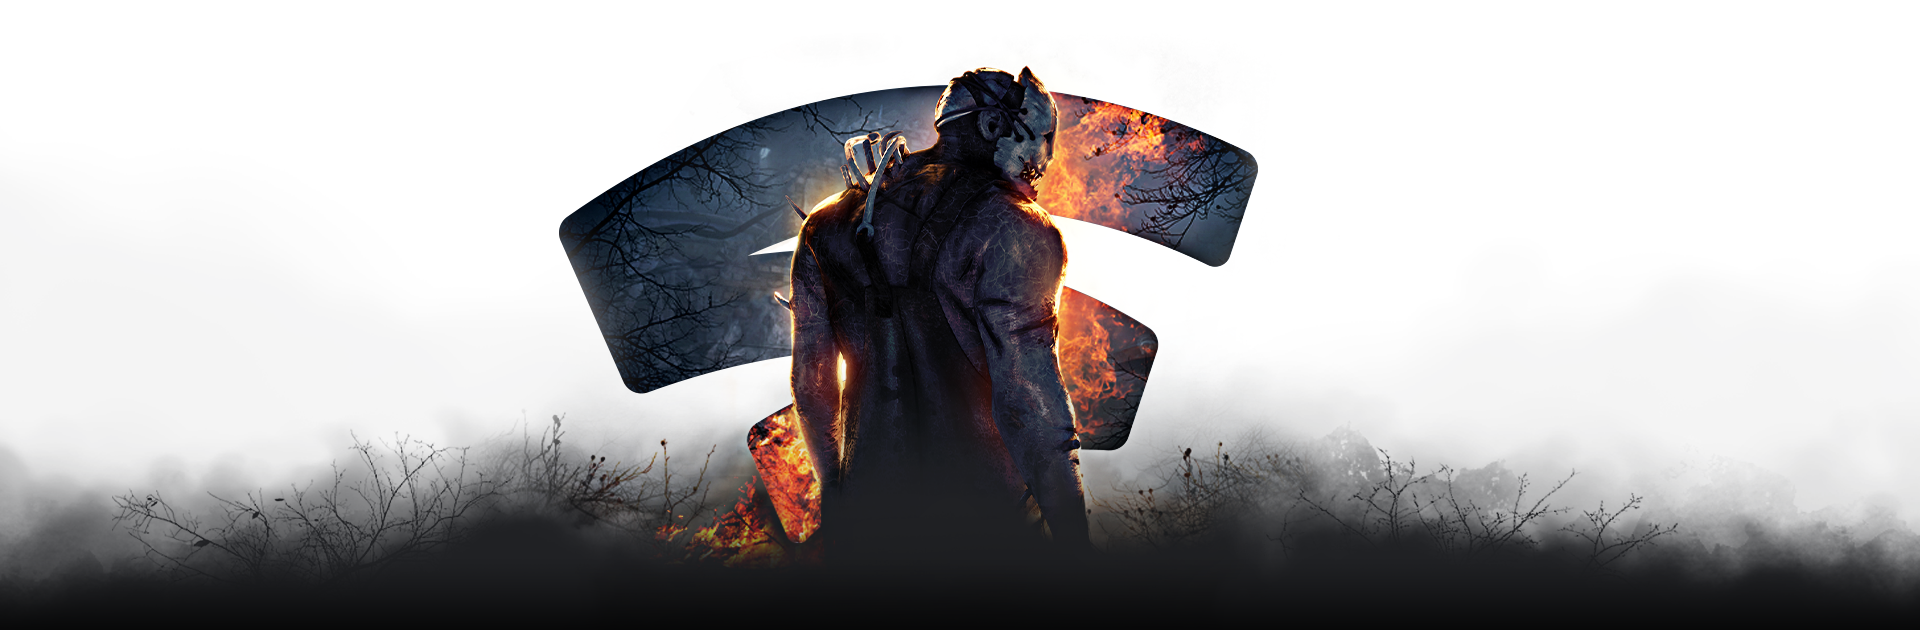 Dead by Daylight maintenant disponible sur Stadia